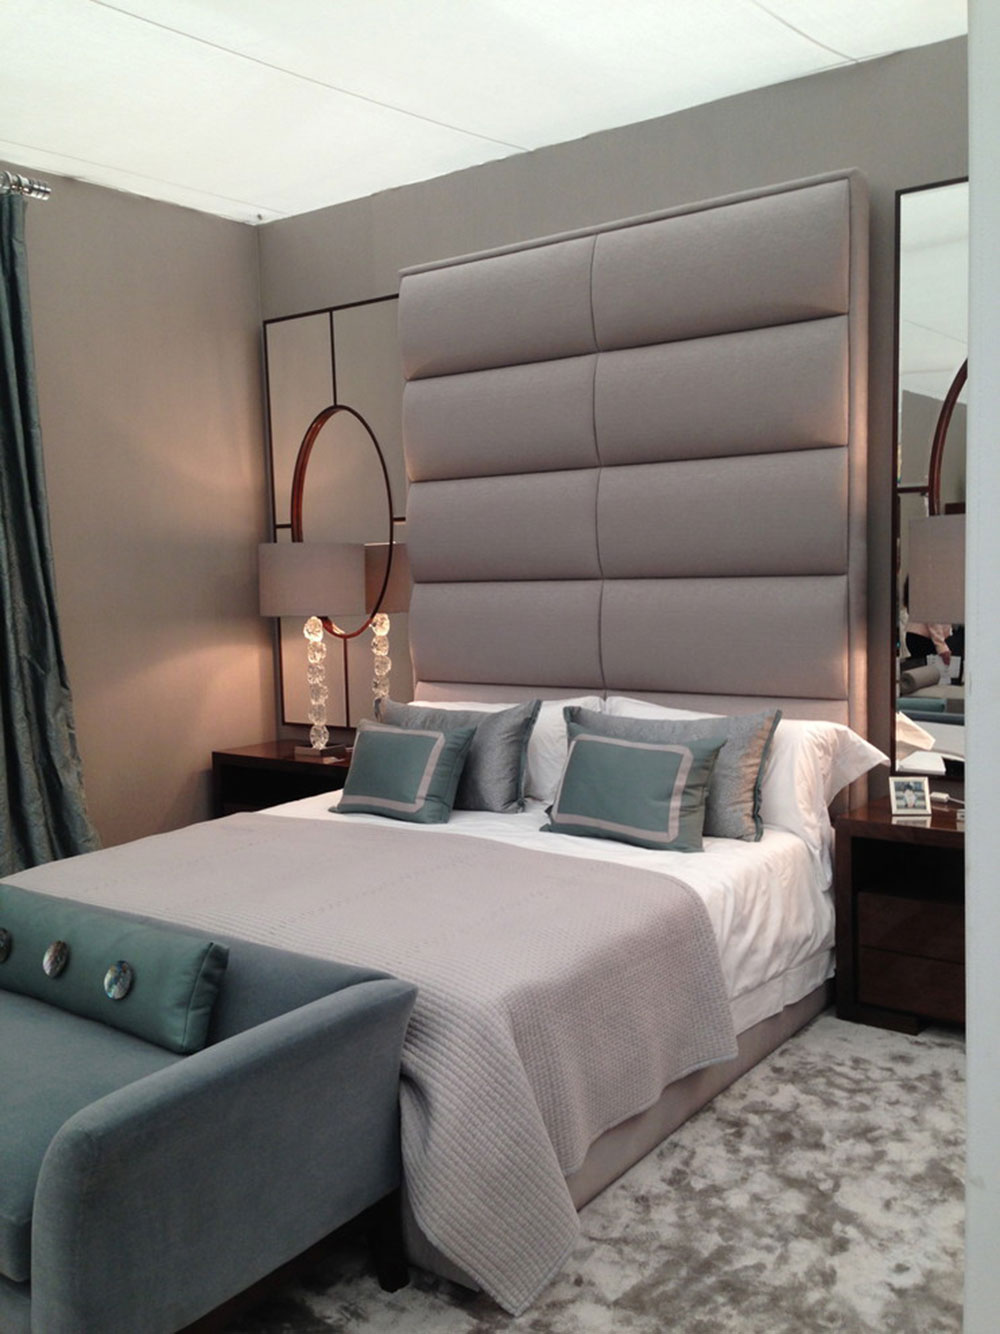 Great-Ideas-In-Choosing-A-Headboard-For-Your-